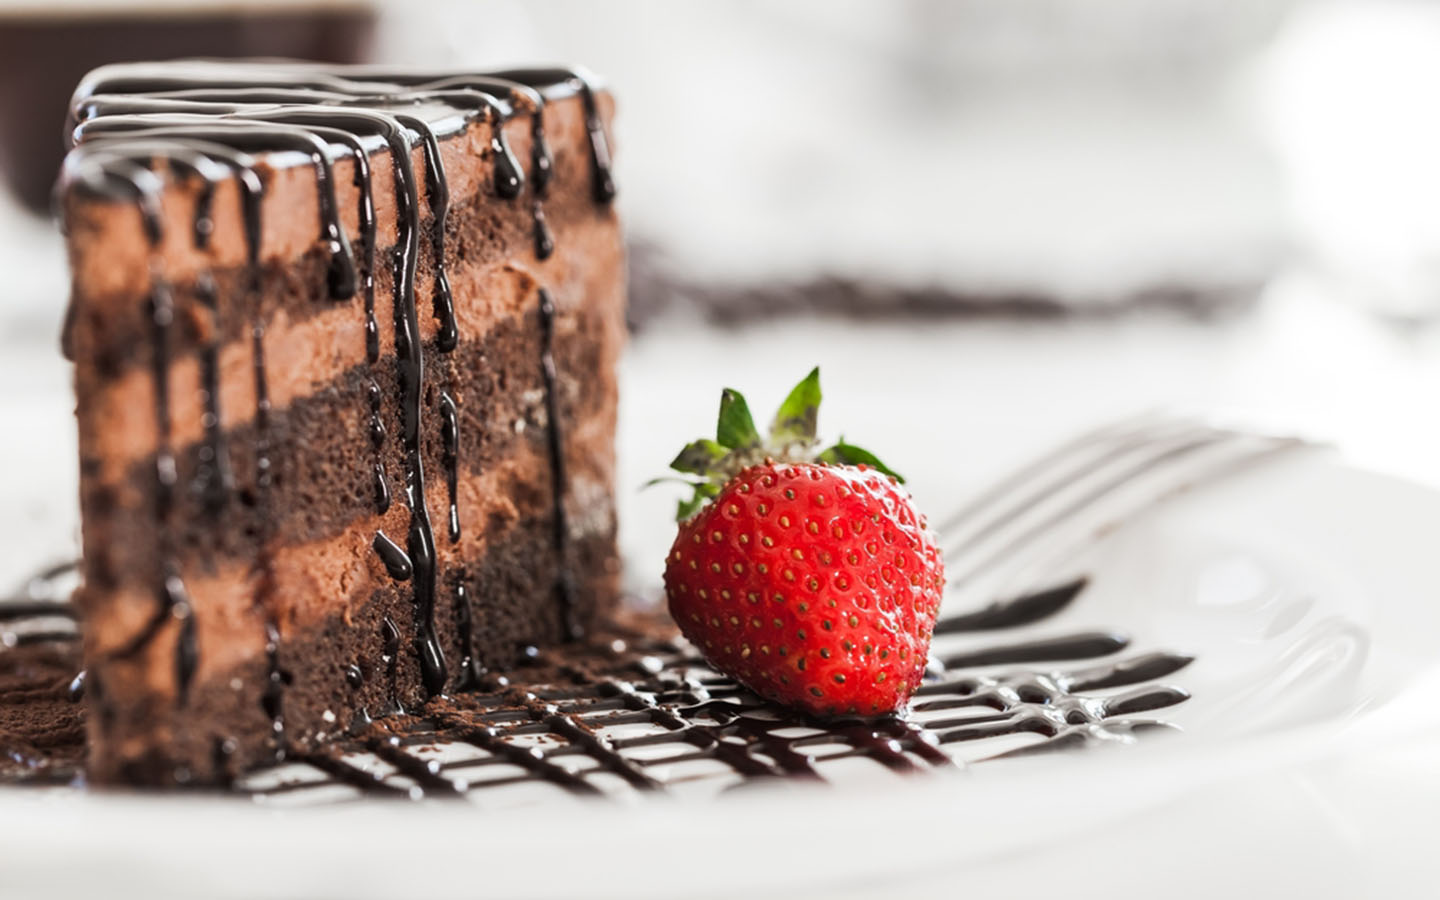 Blackout chocolate cake - Desserts in Abu Dhabi